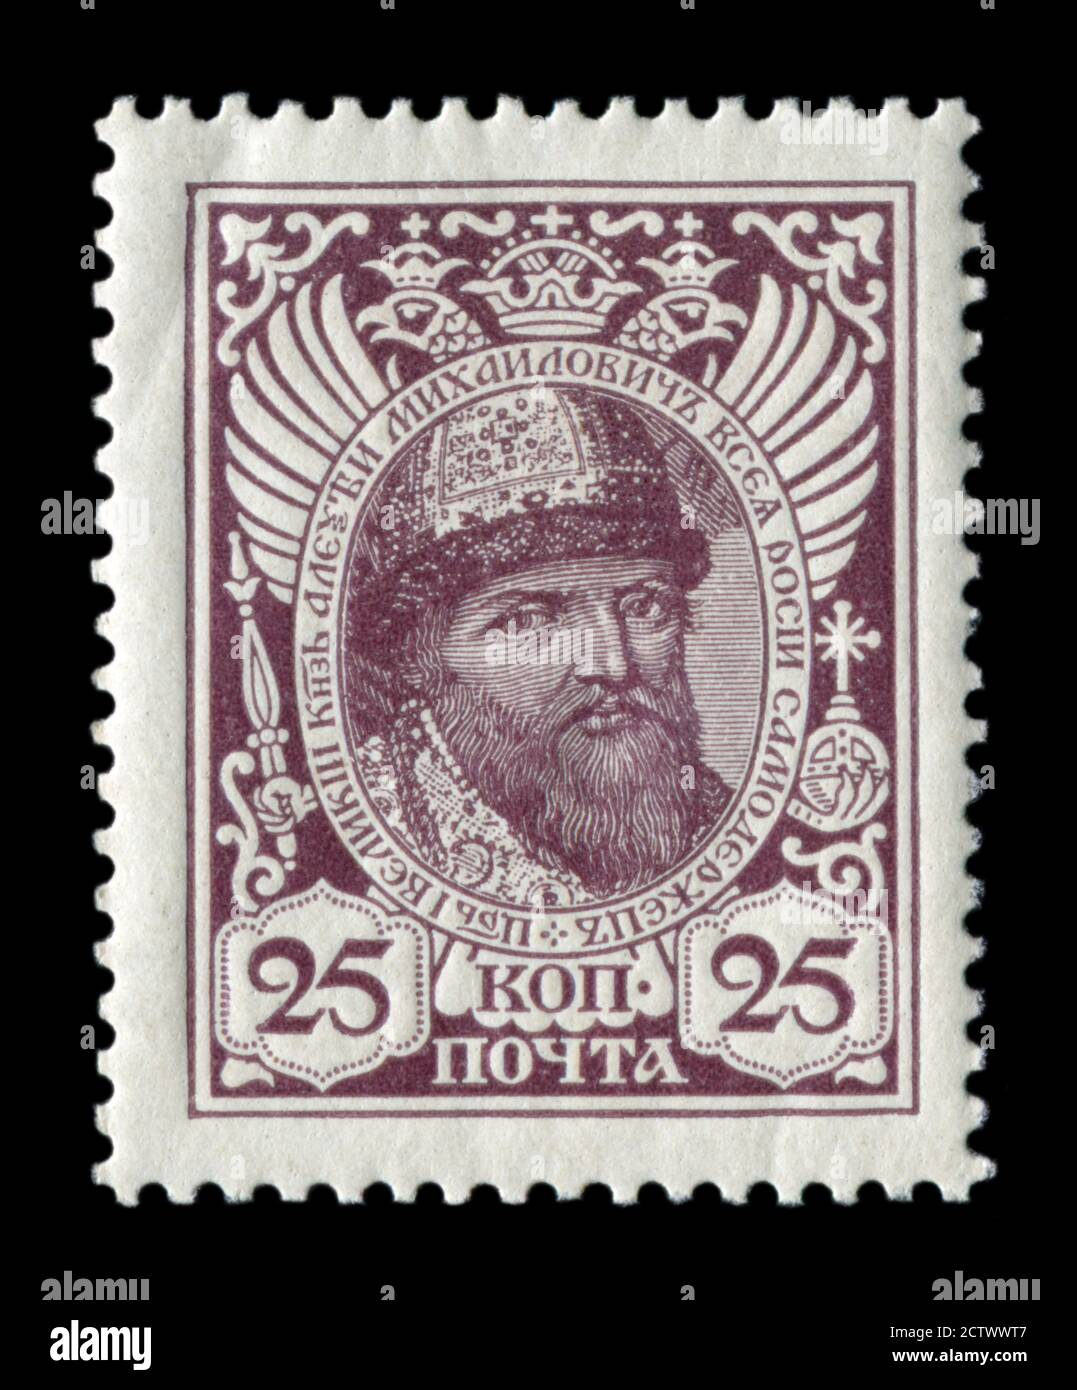 Russian historical postage stamp: 300th anniversary of the house of Romanov. Tsarist dynasty of the Russian Empire, Tsar Alexis, Russia, 1613-1913 Stock Photo